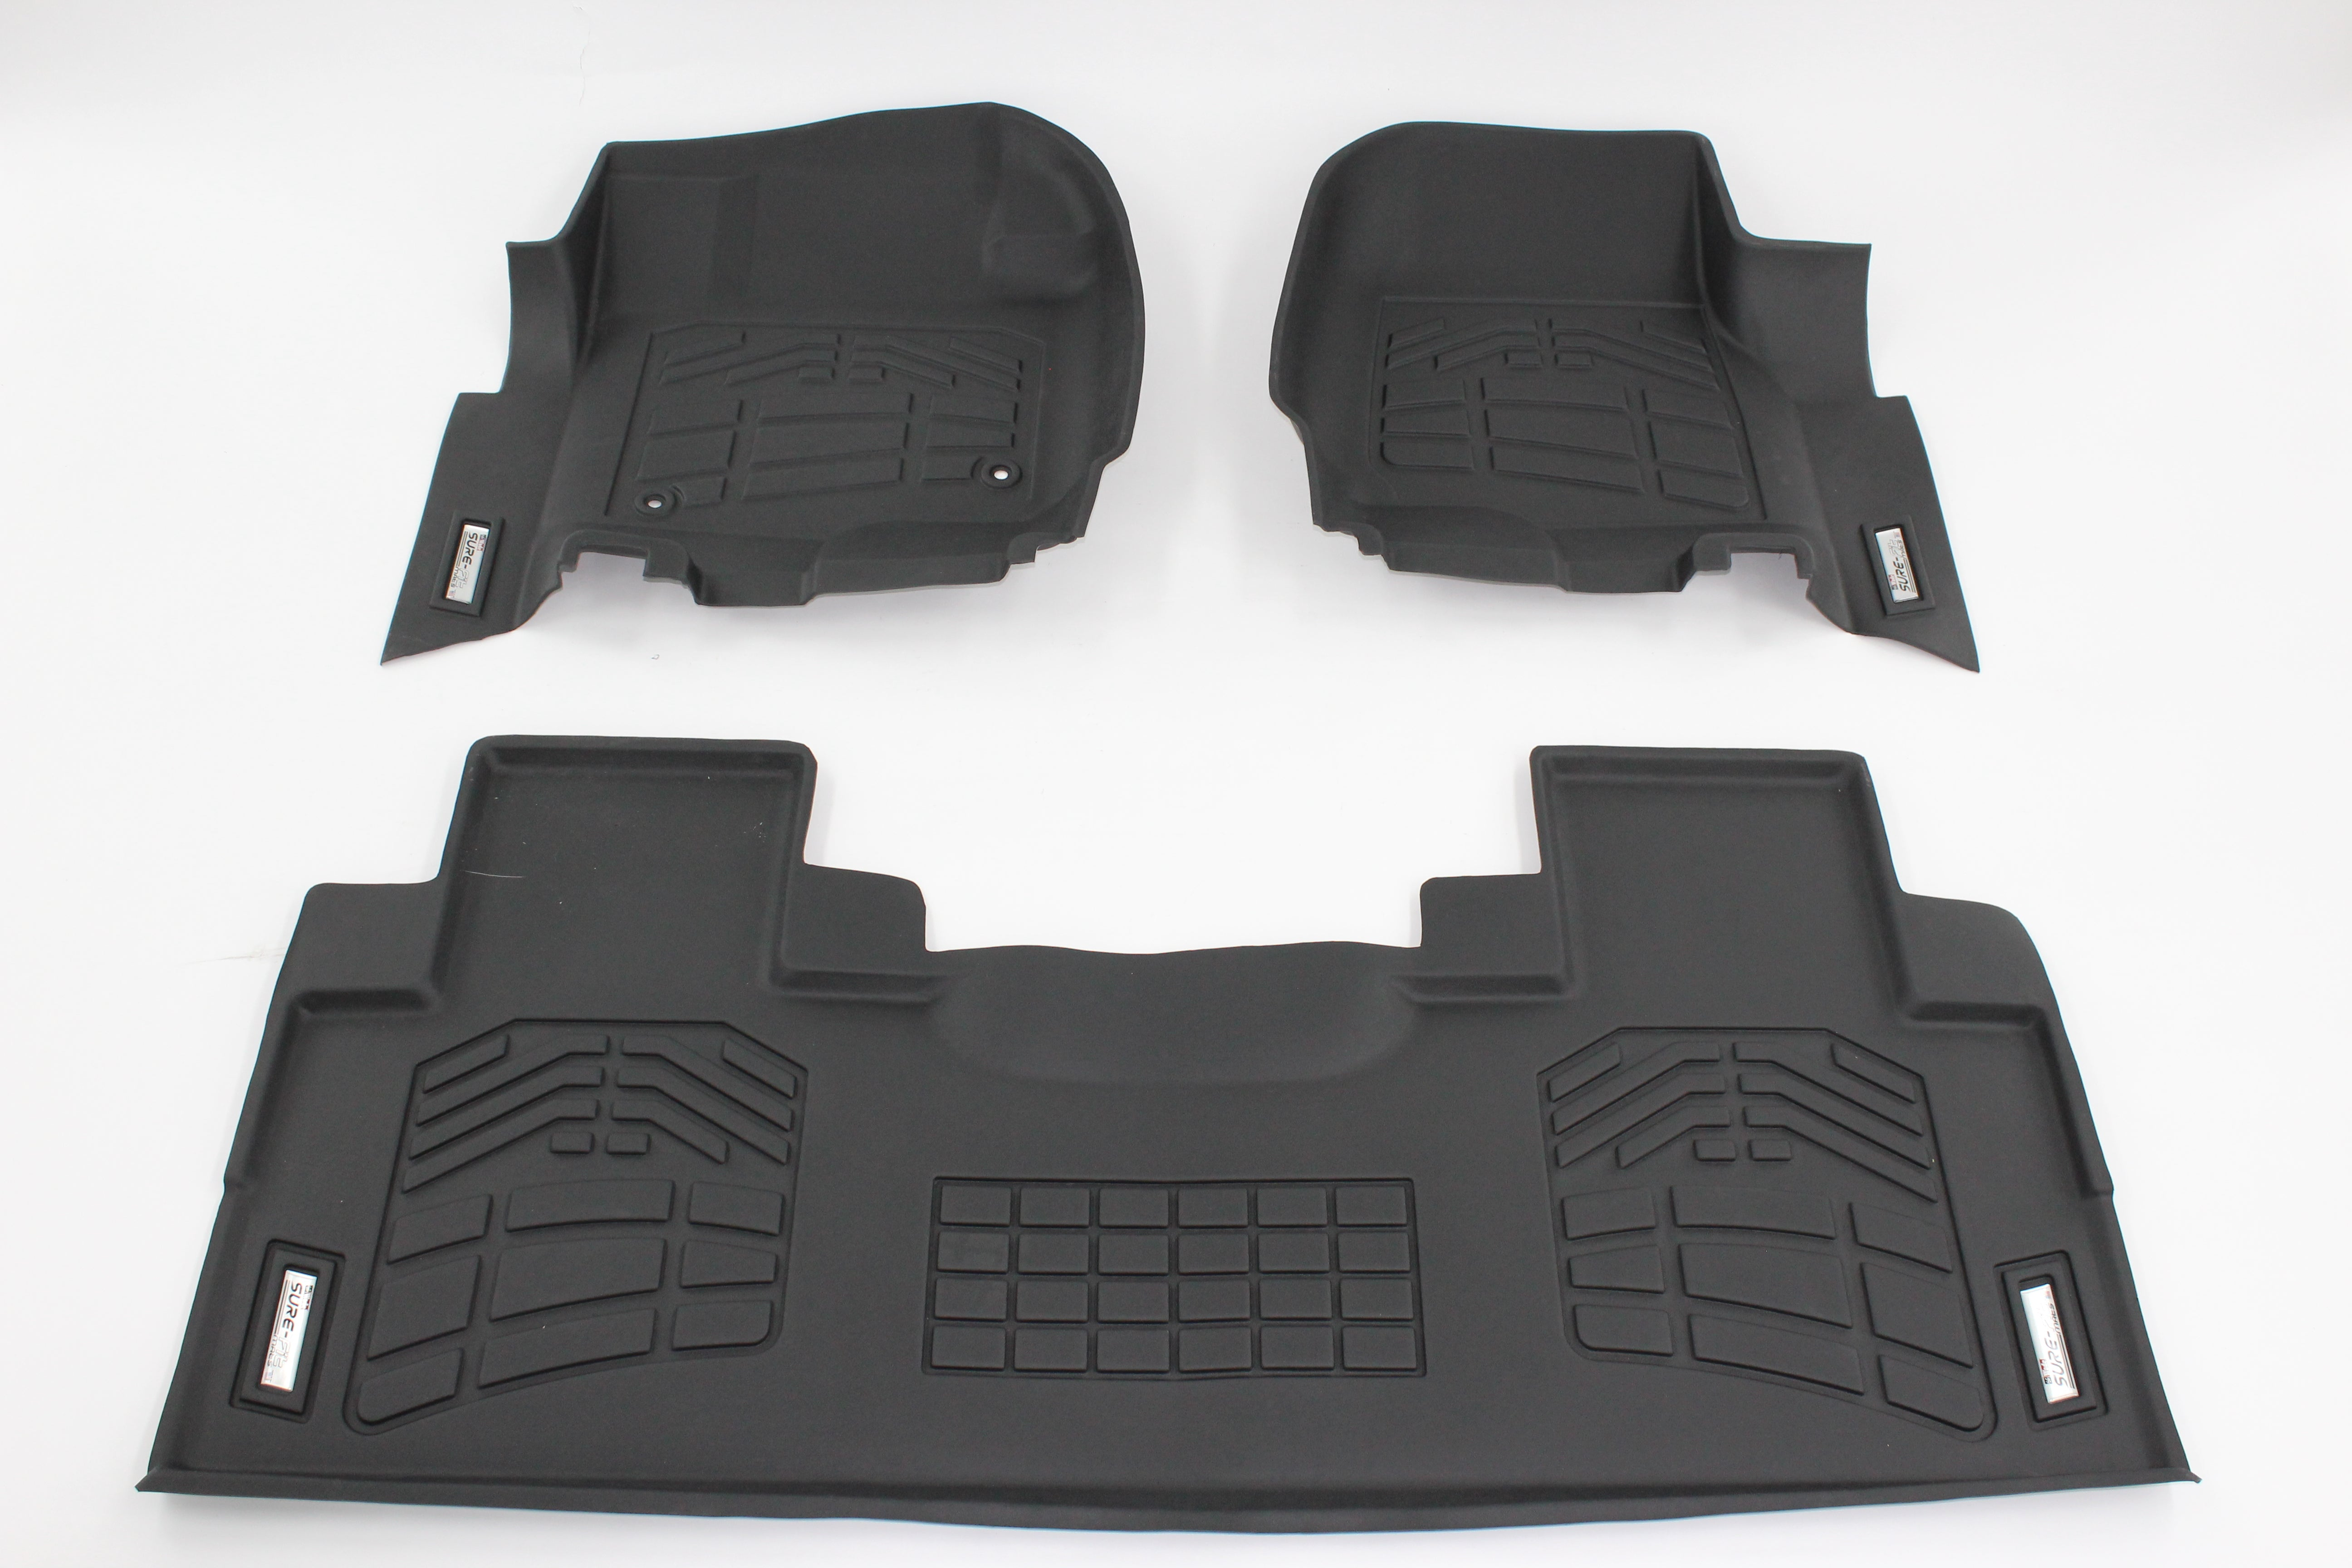 2018 Ford Super Duty Floor Mats | Combo Pack